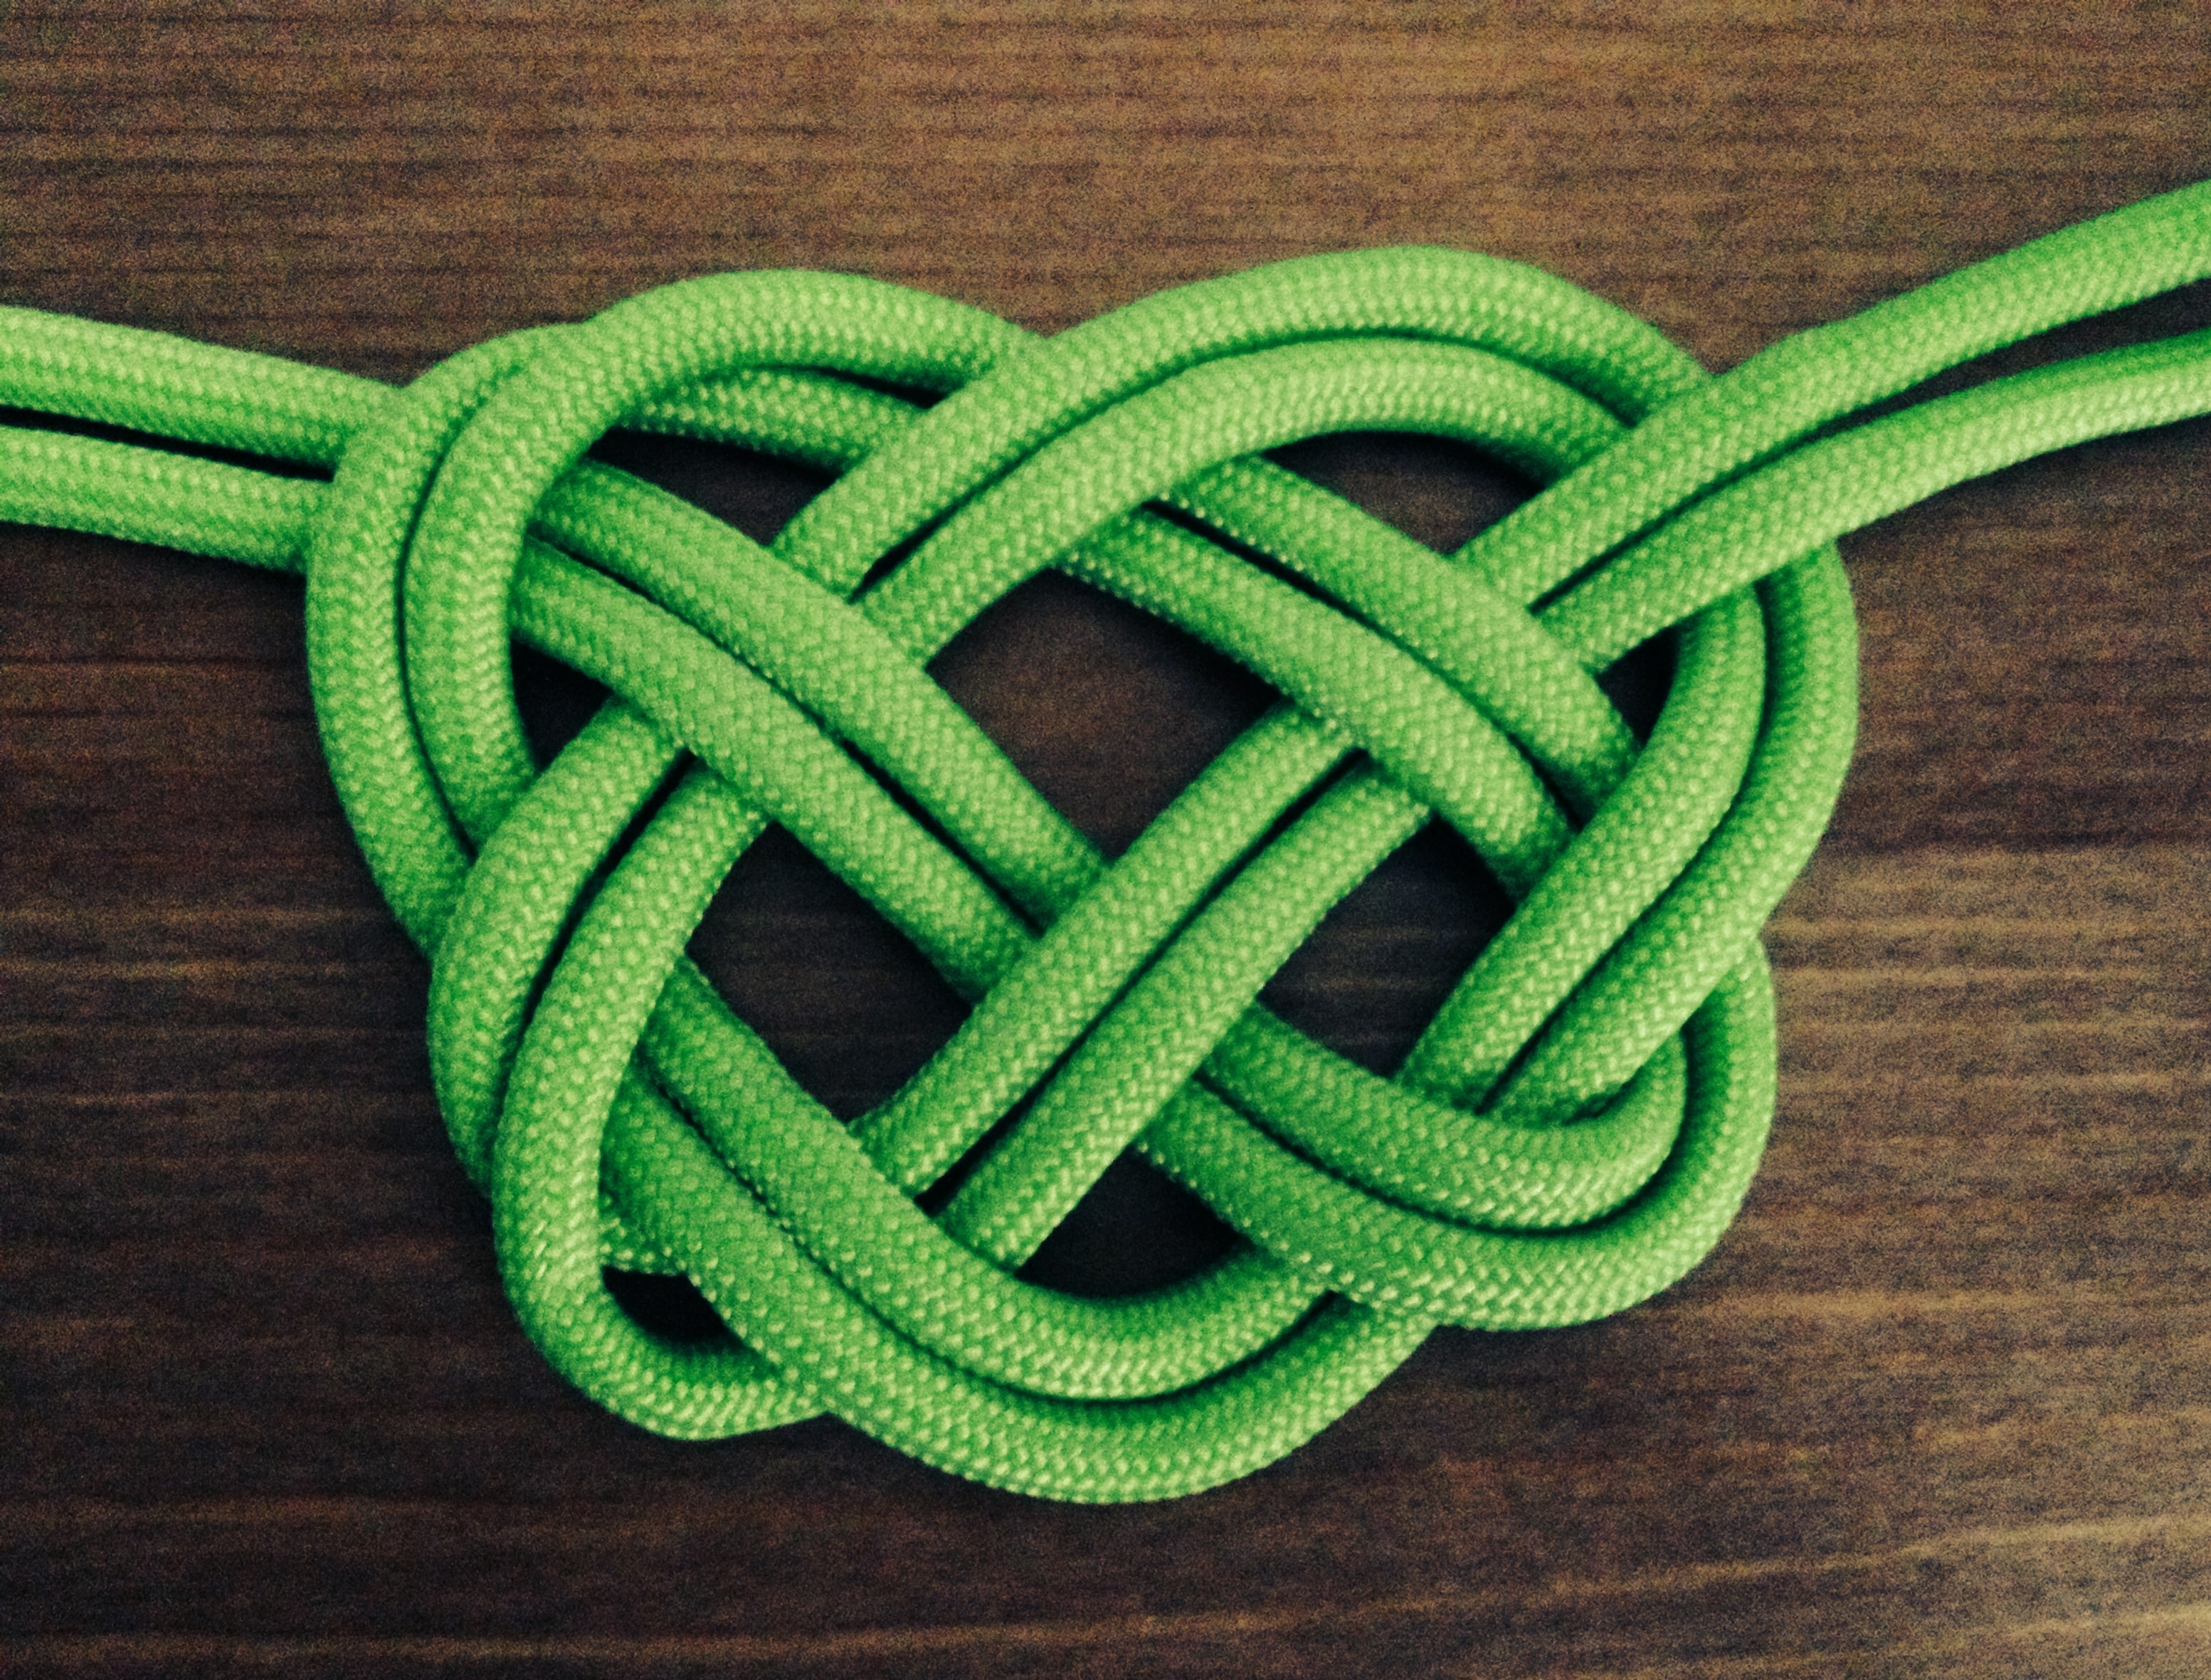 Celtic Heart Knot Knitting Pattern Free : How to Make a Celtic Heart Knot Studio Knit